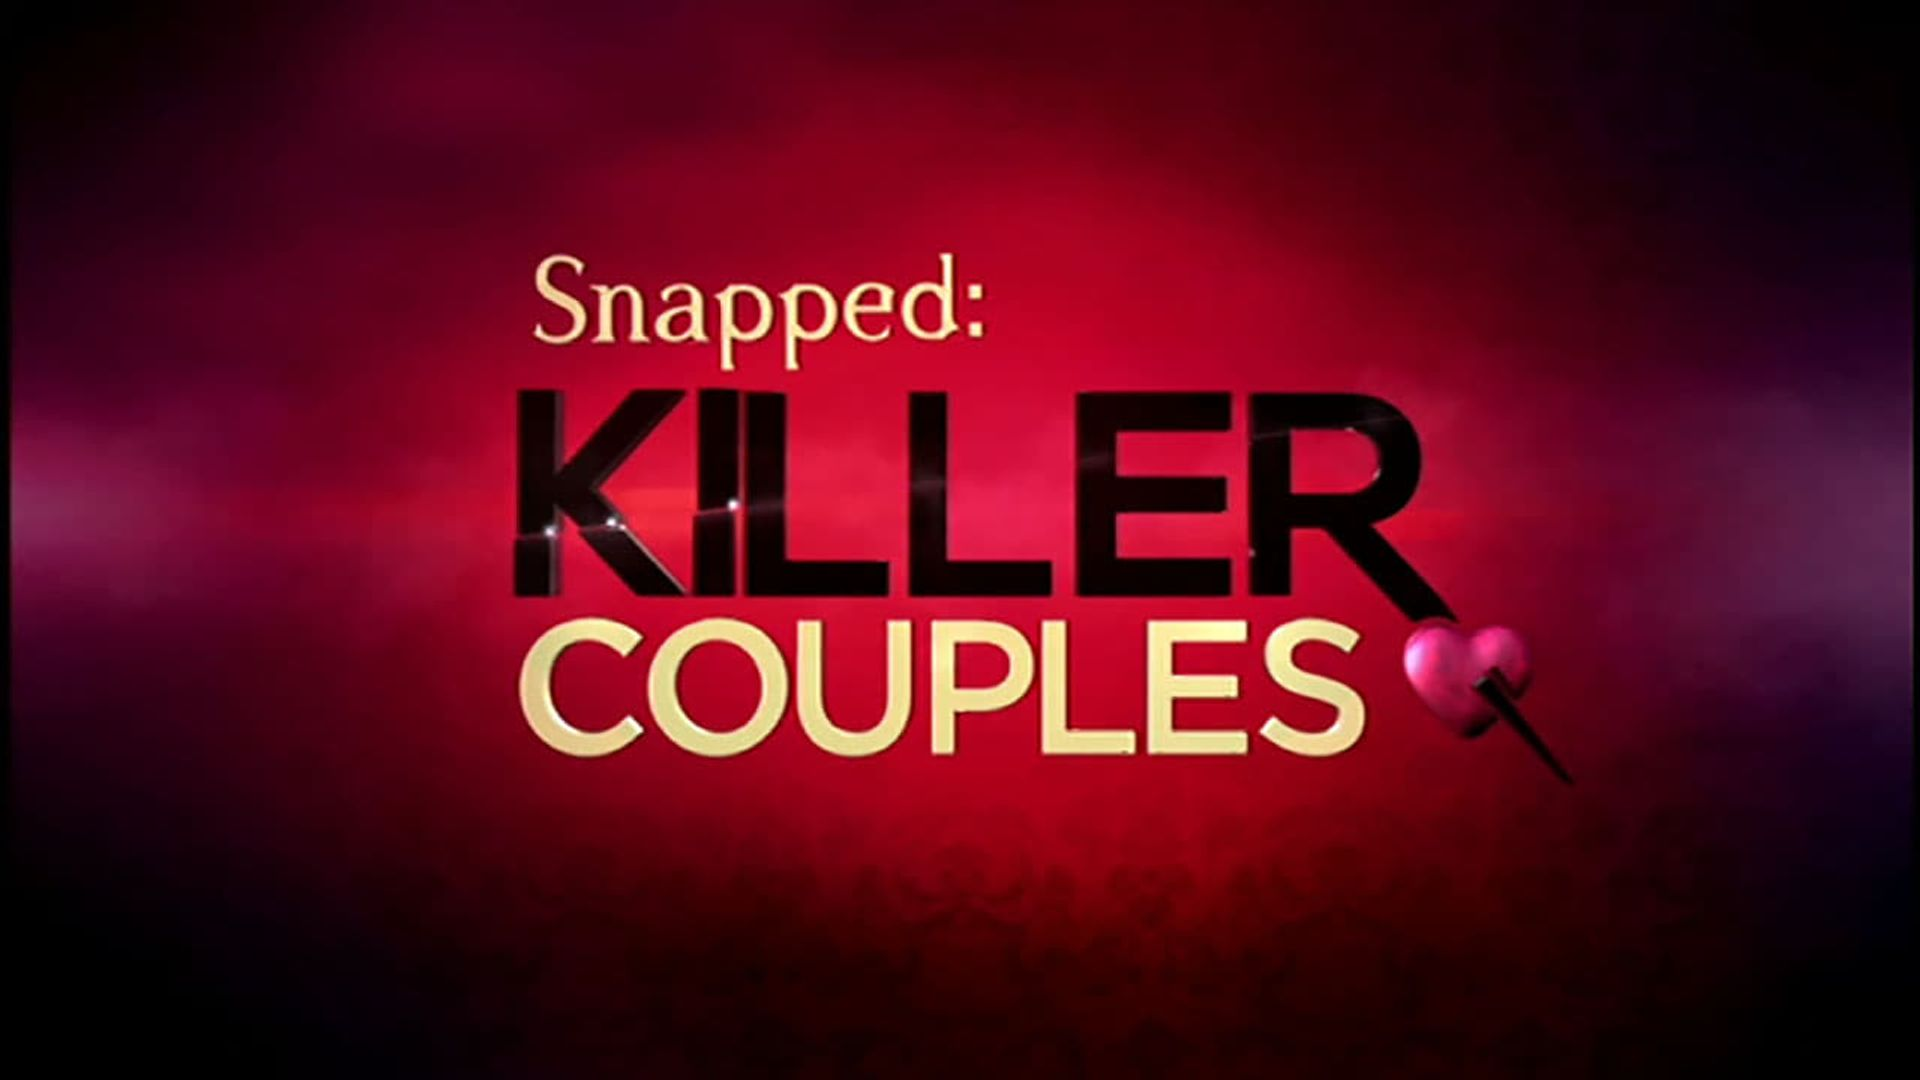 Snapped: Killer Couples - Watch Episodes on Oxygen or